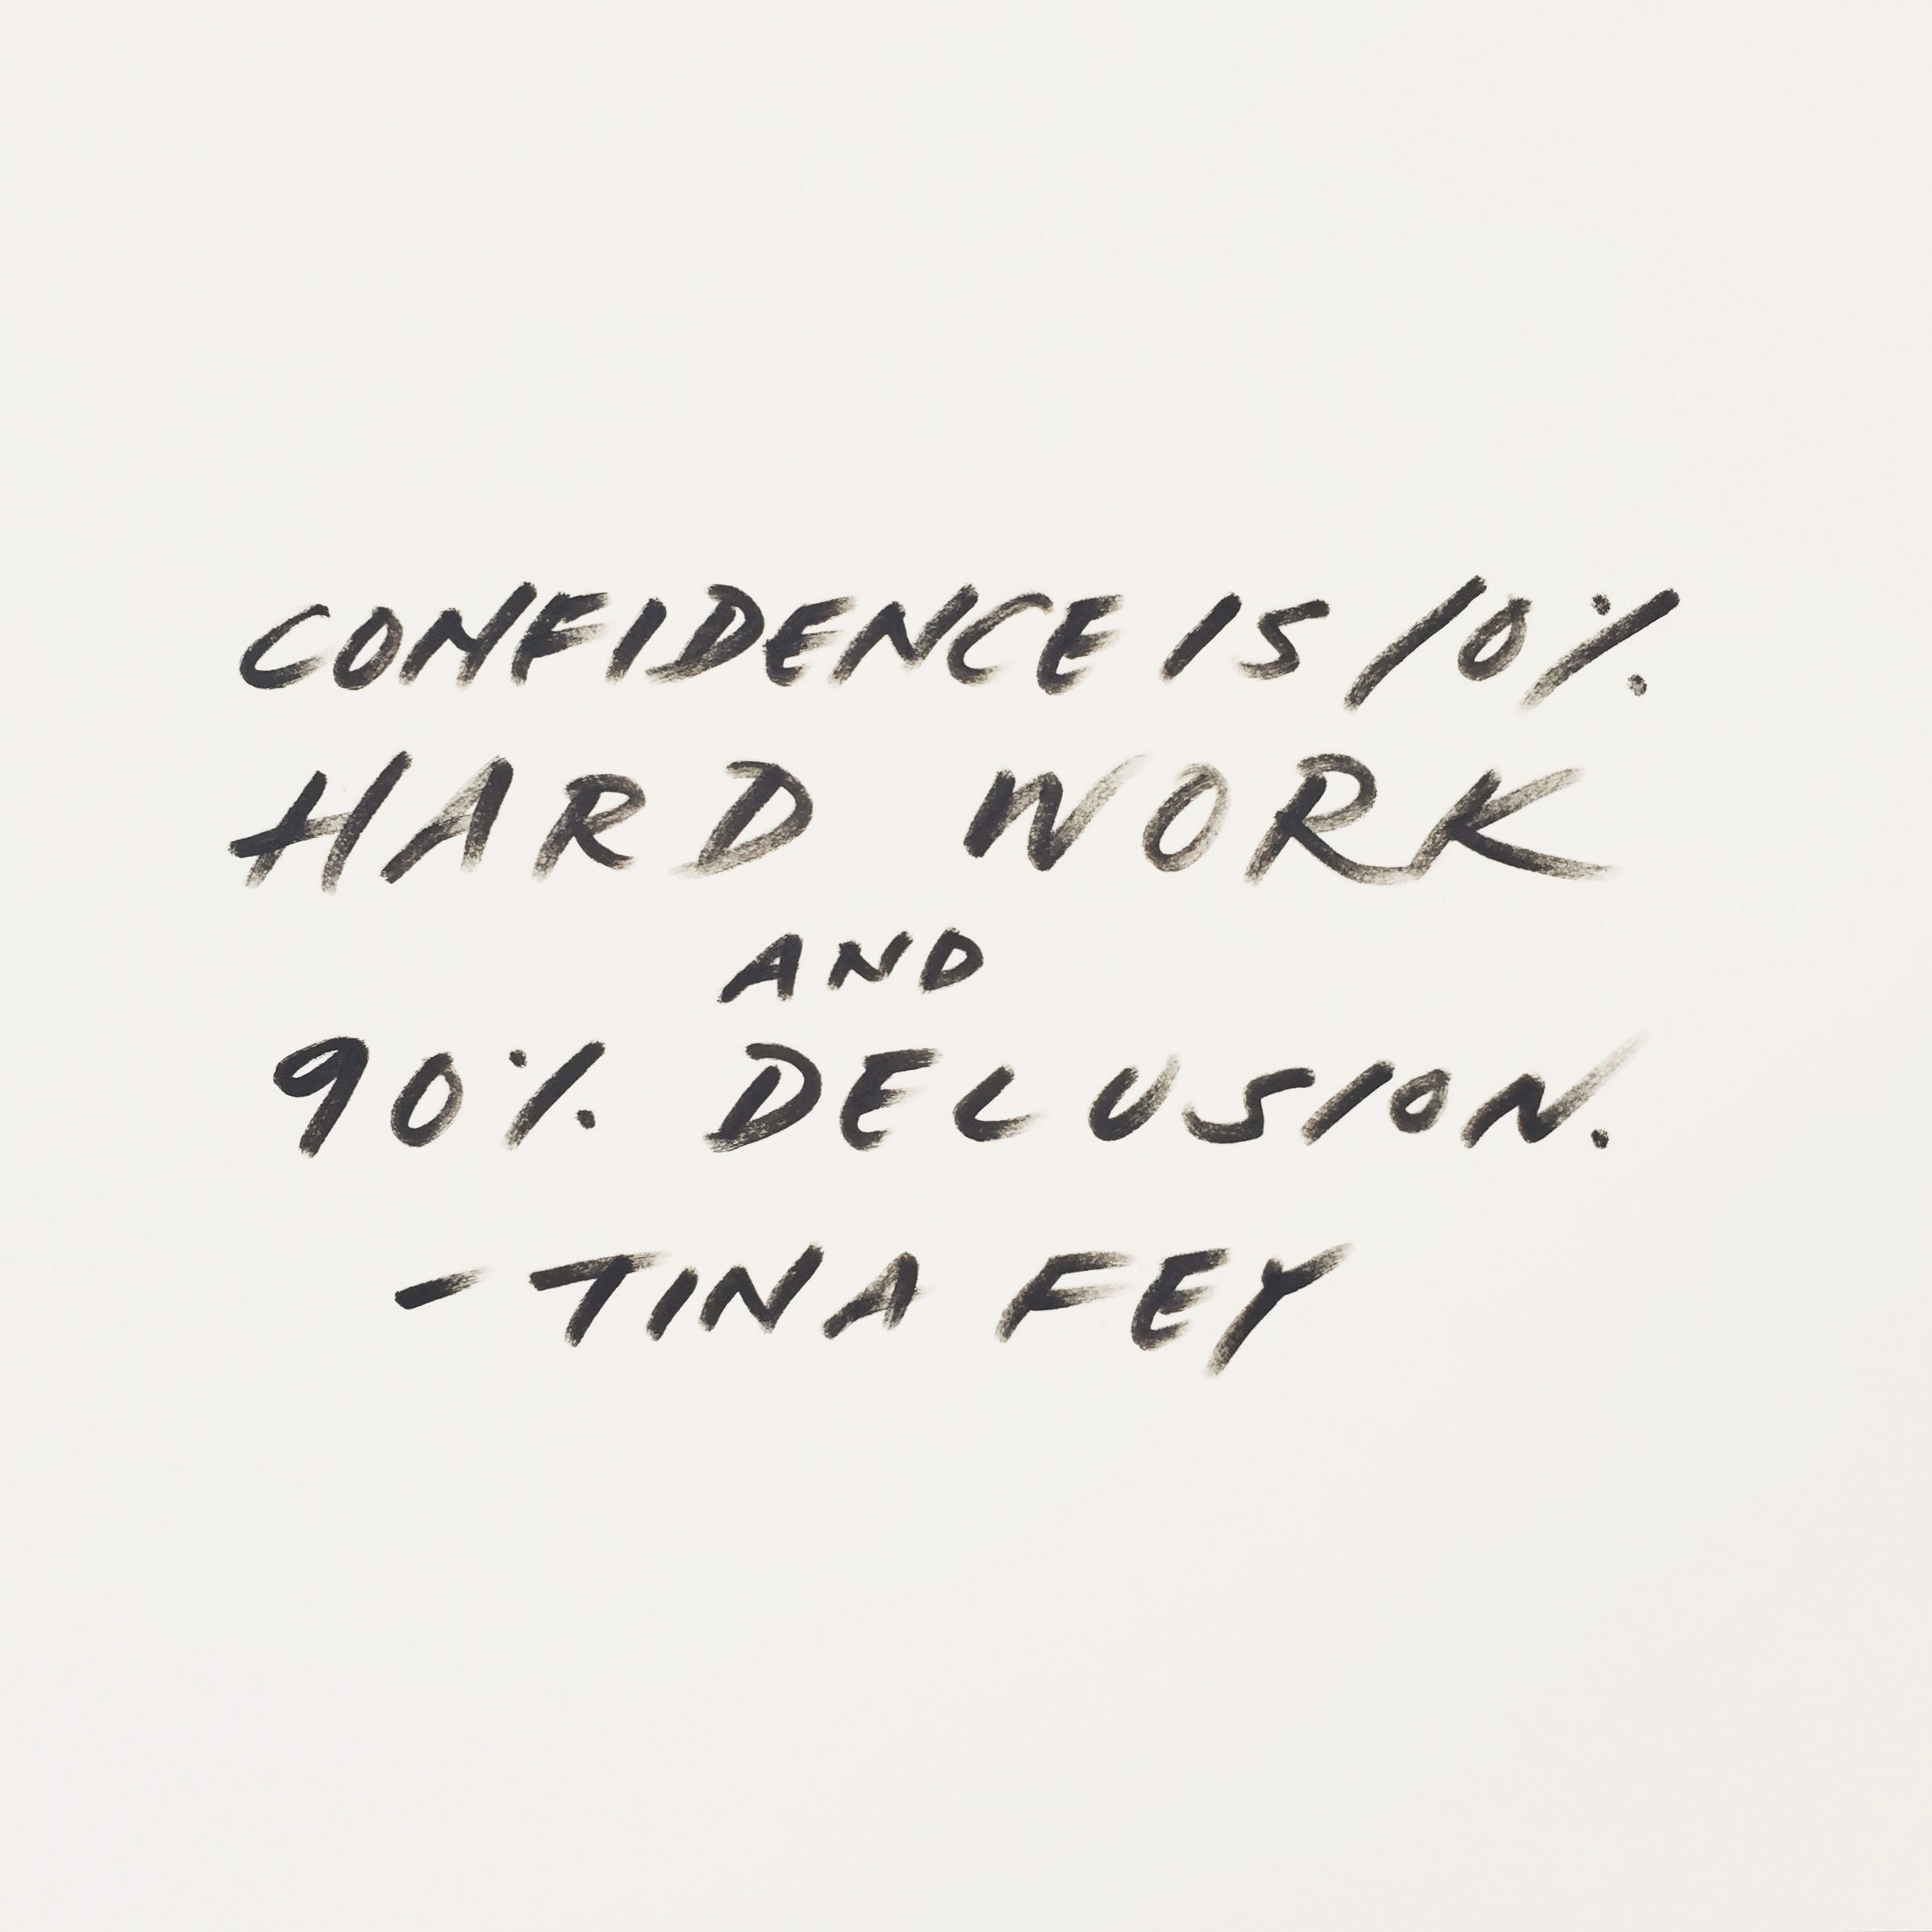 Fake it until you make it, sweetheart! Confidence is 10%